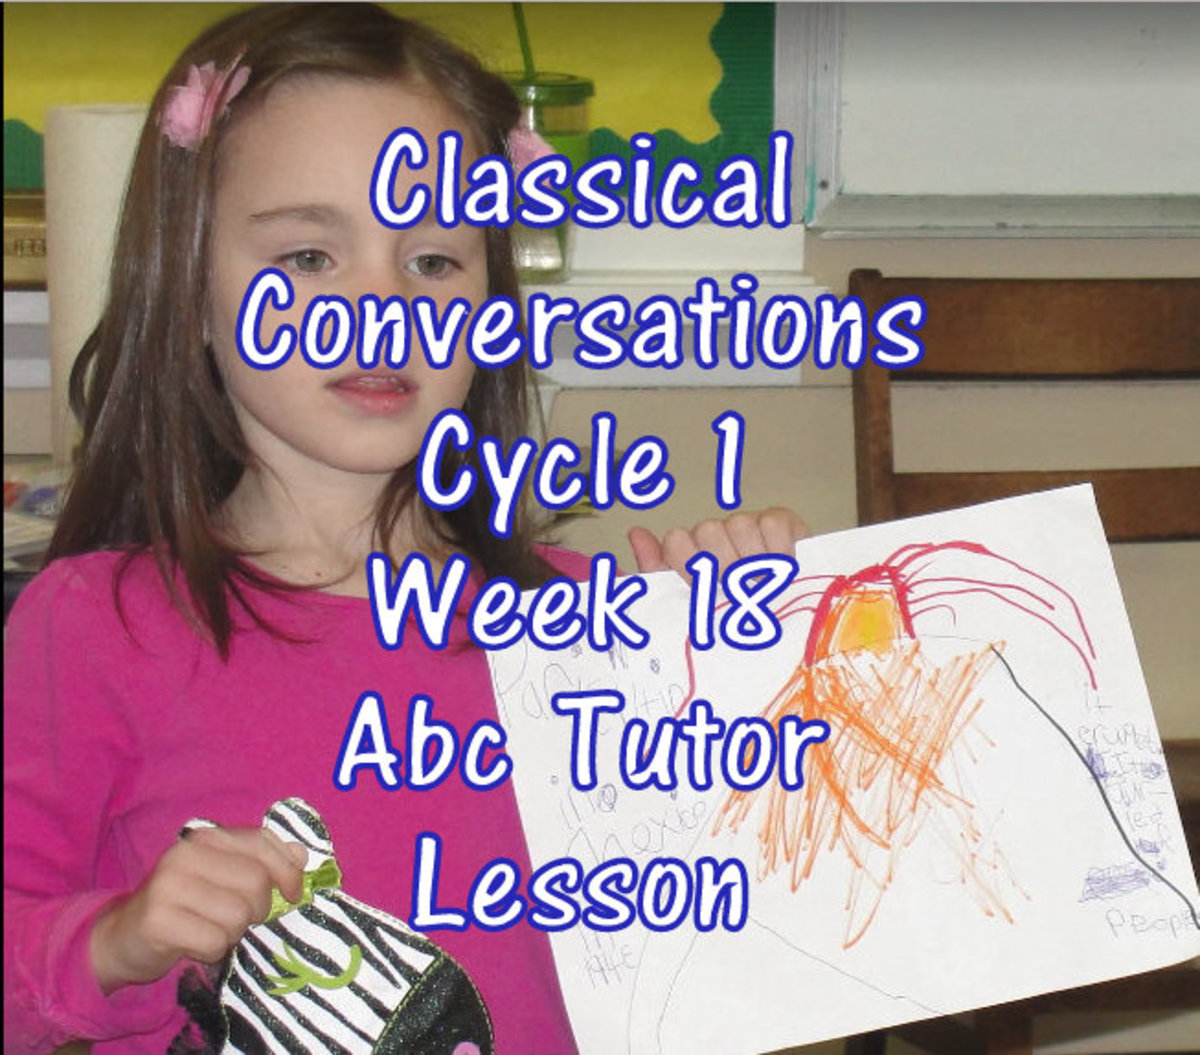 CC Cycle 1 Week 18 Plan for Abecedarian Tutors